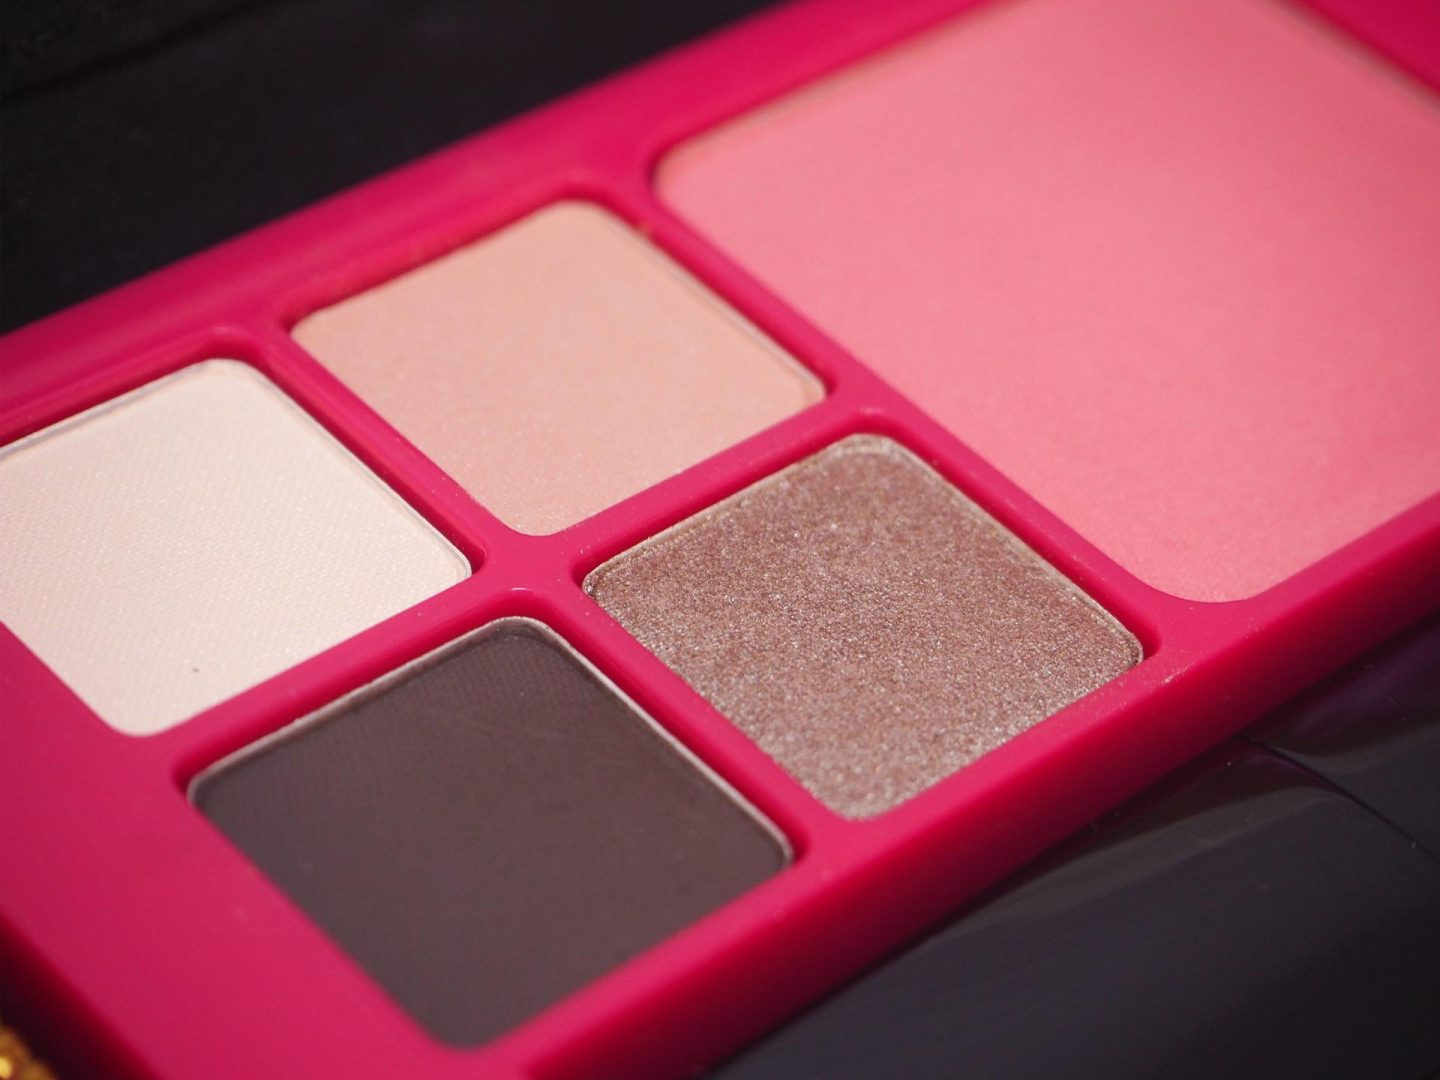 estee-lauder-pink-perfection-colour-collection-for-bca-breast-cancer-awareness-rachel-nicole-uk-beauty-blogger-1